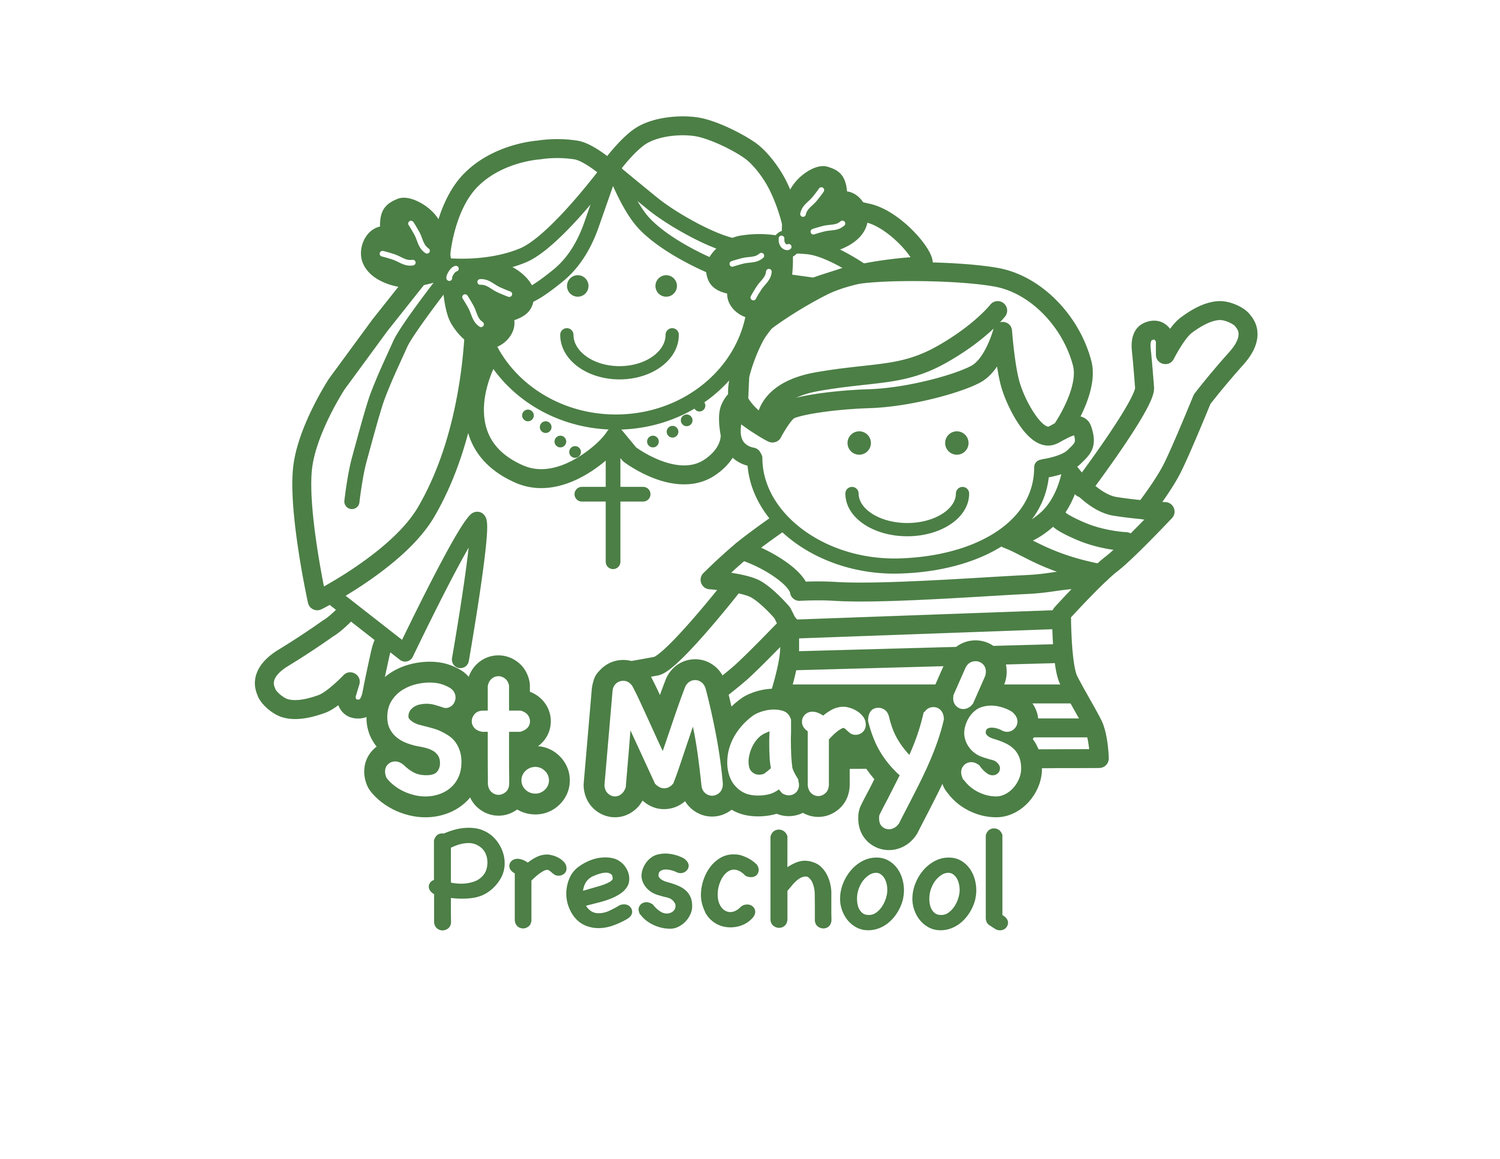 St. Mary's Preschool